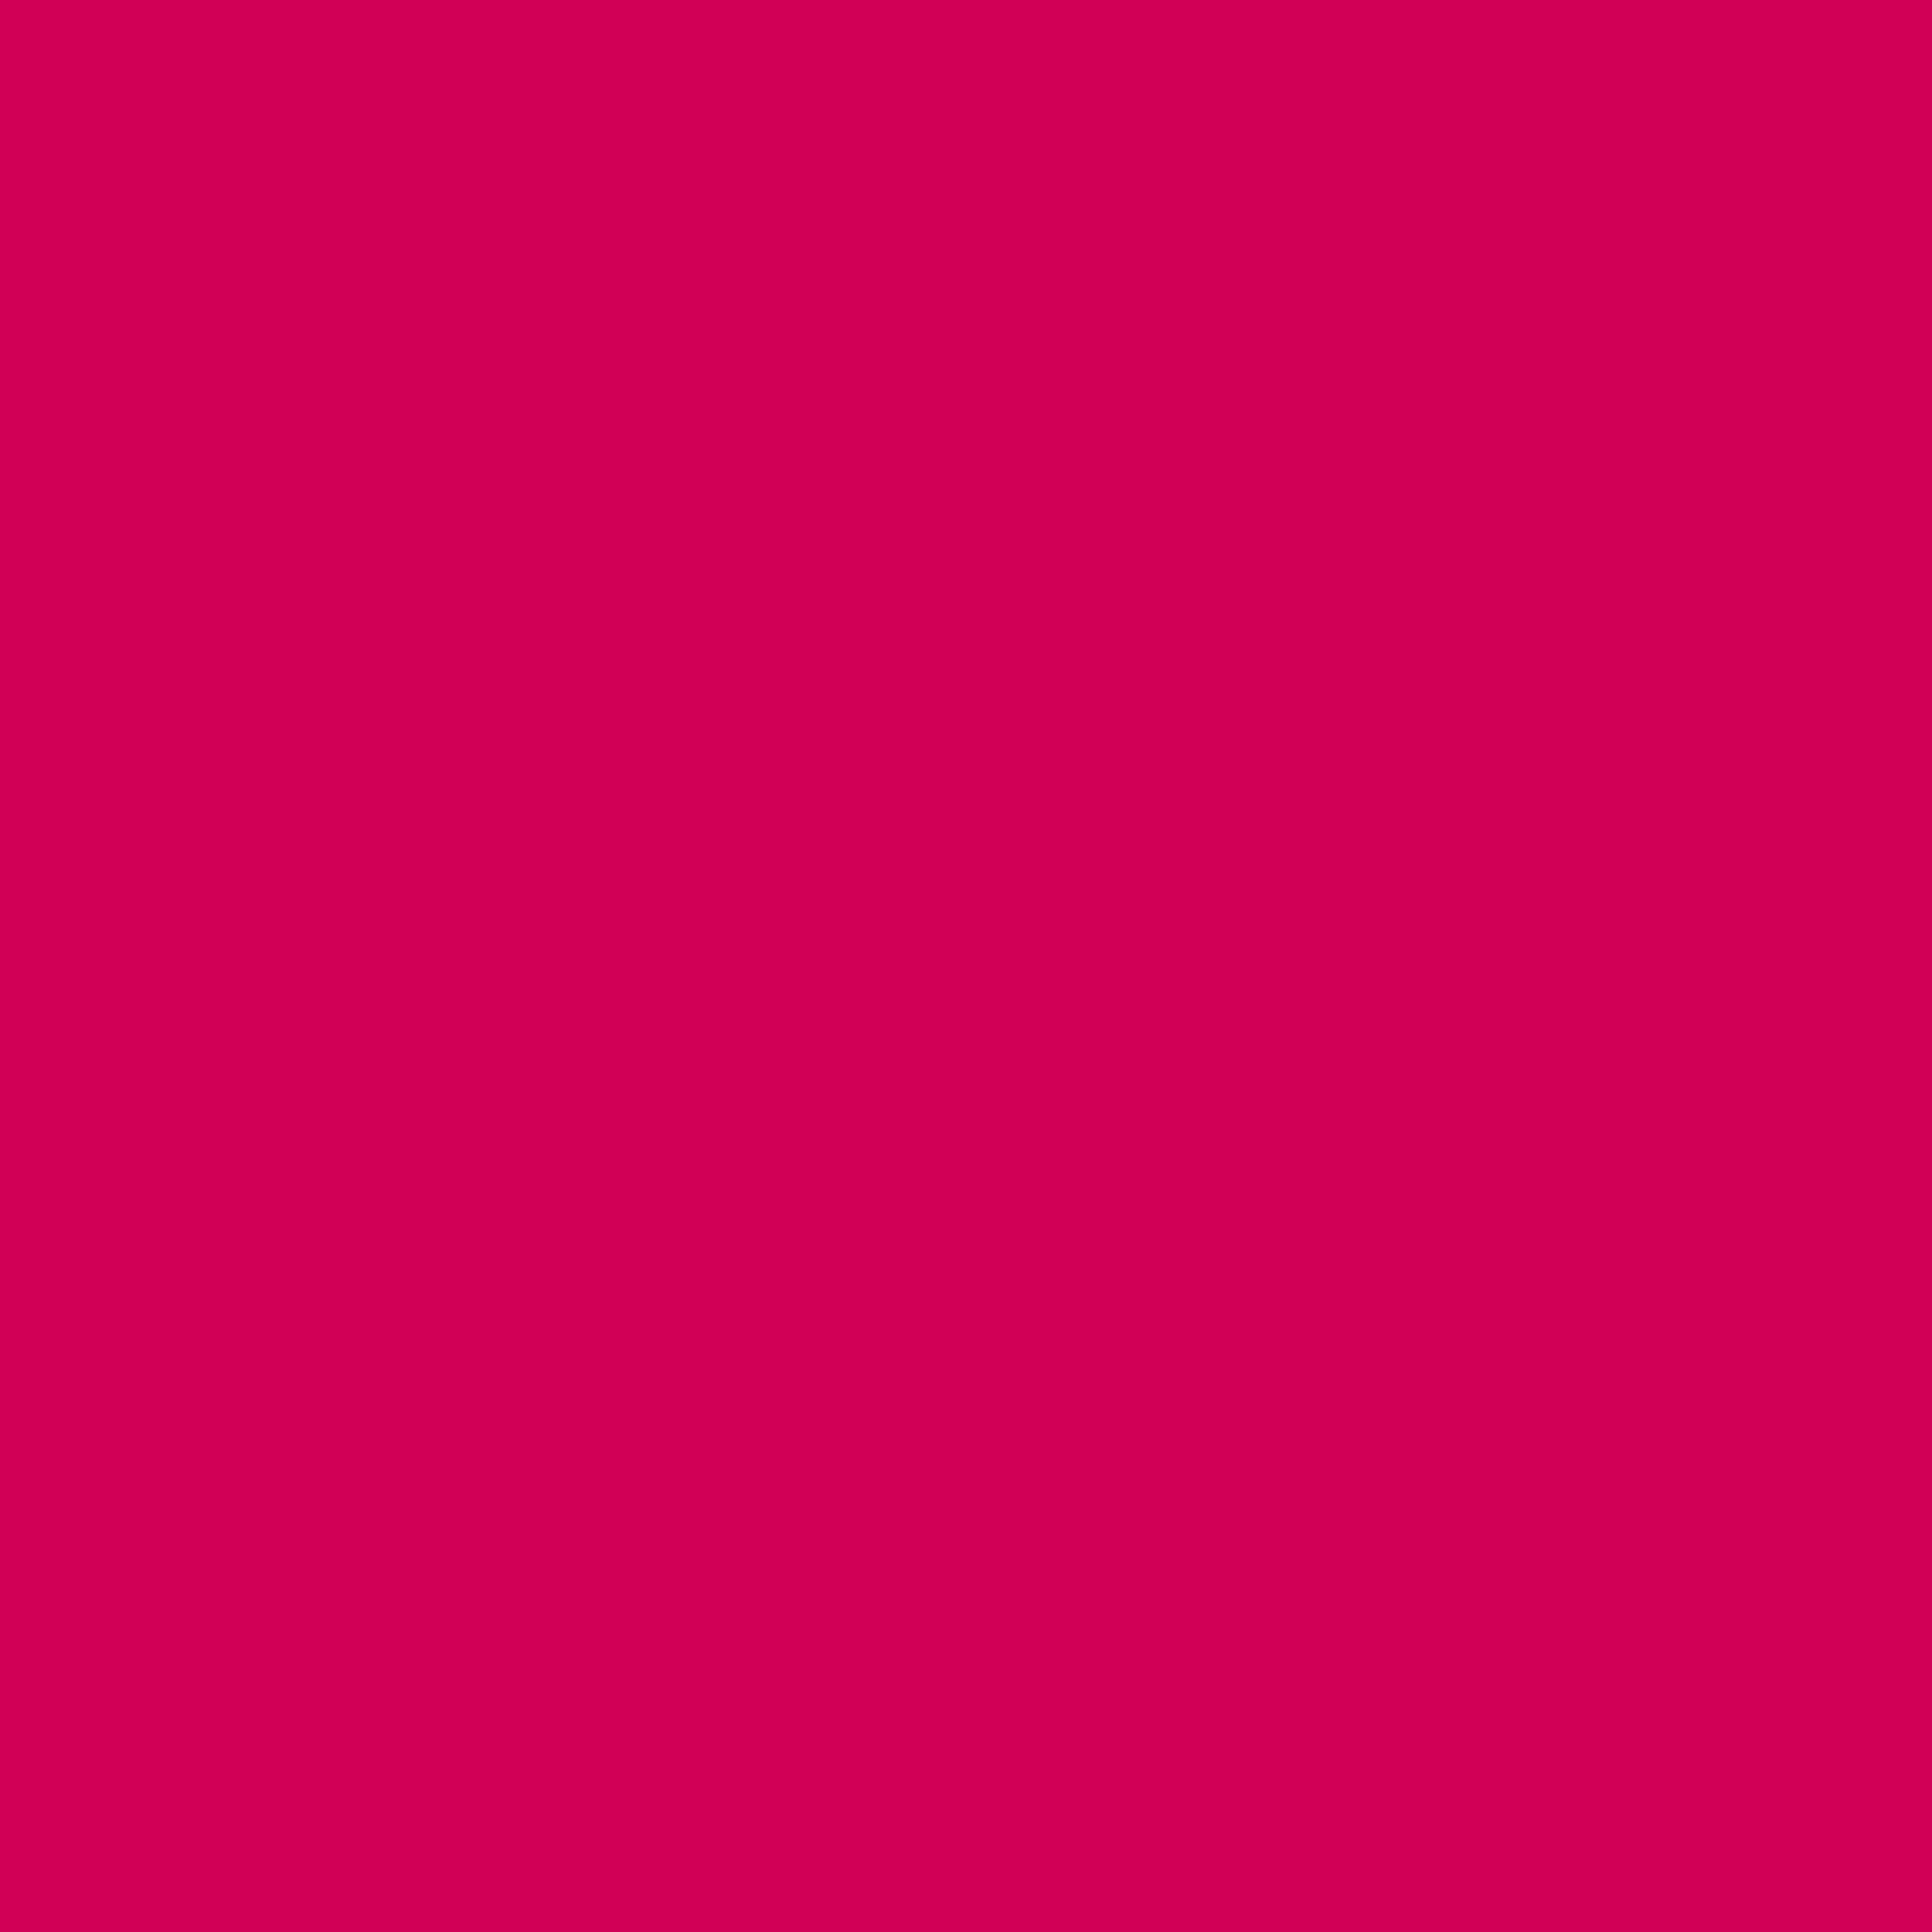 3600x3600 Rubine Red Solid Color Background